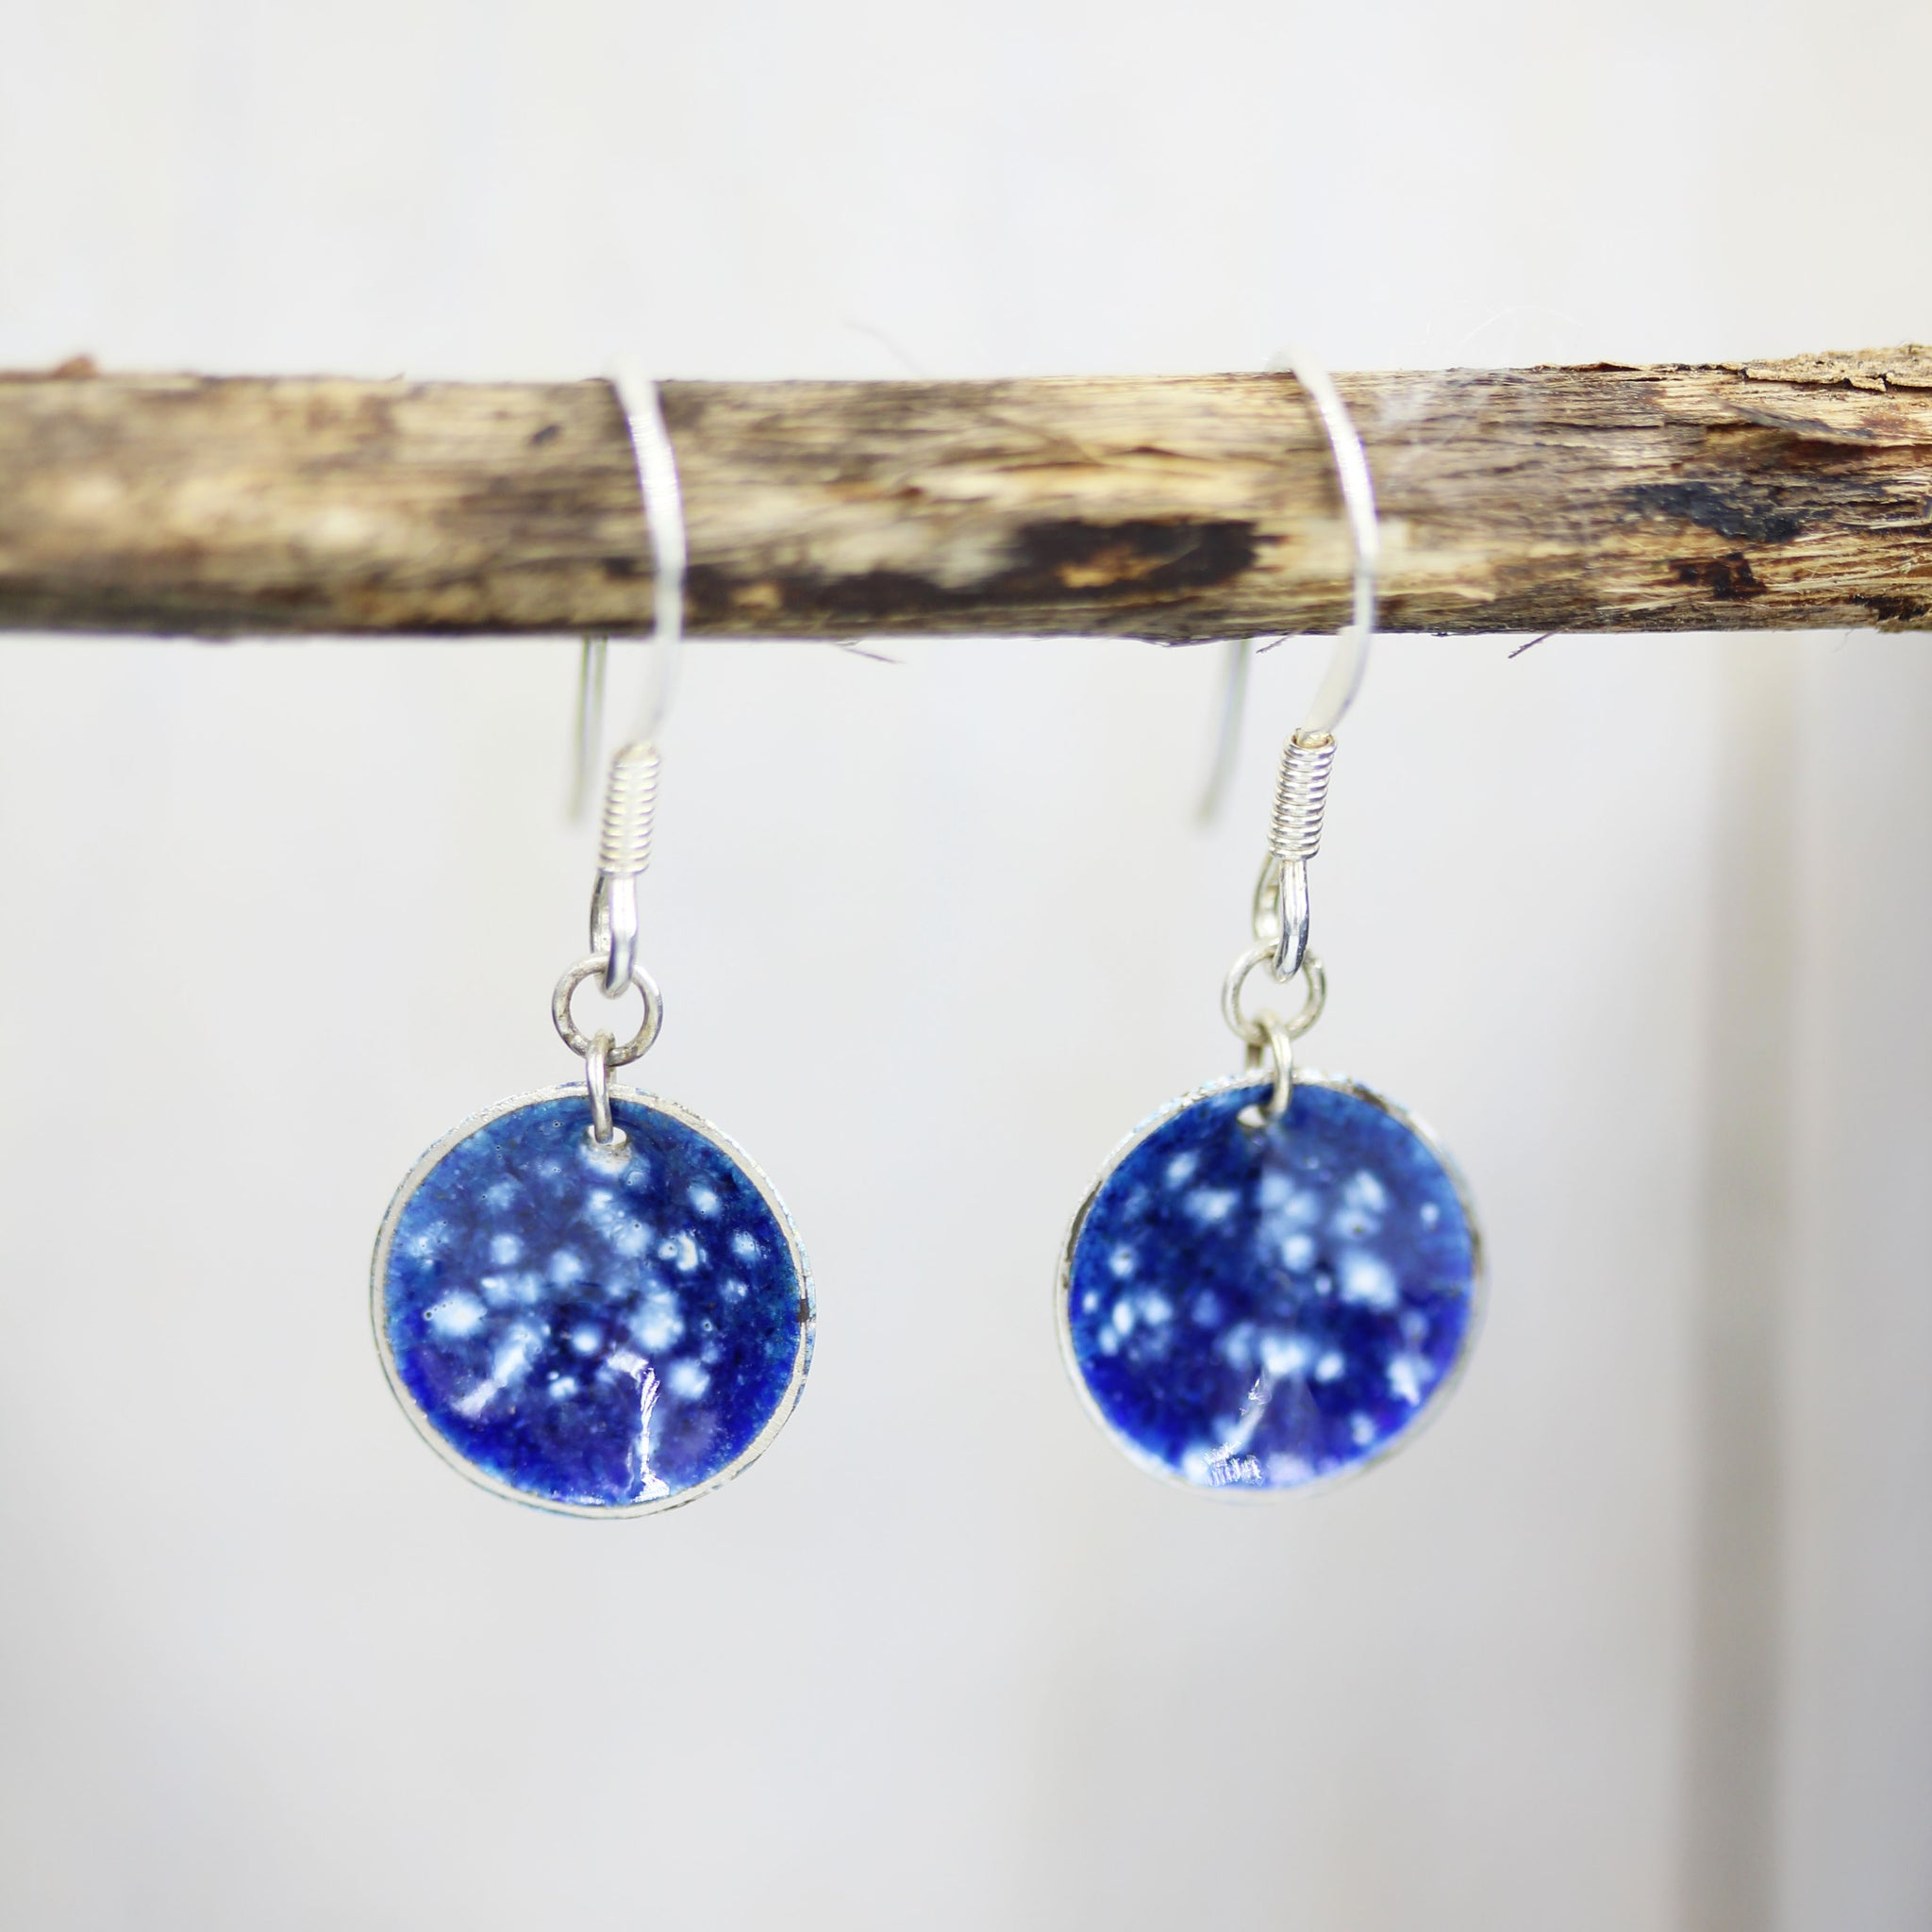 Enamel and silver 'Nebula' earrings handmade by Gemma Tremayne Jewellery, inpired by the beauty, magic and wonder of the nebulas and galaxies in outer space